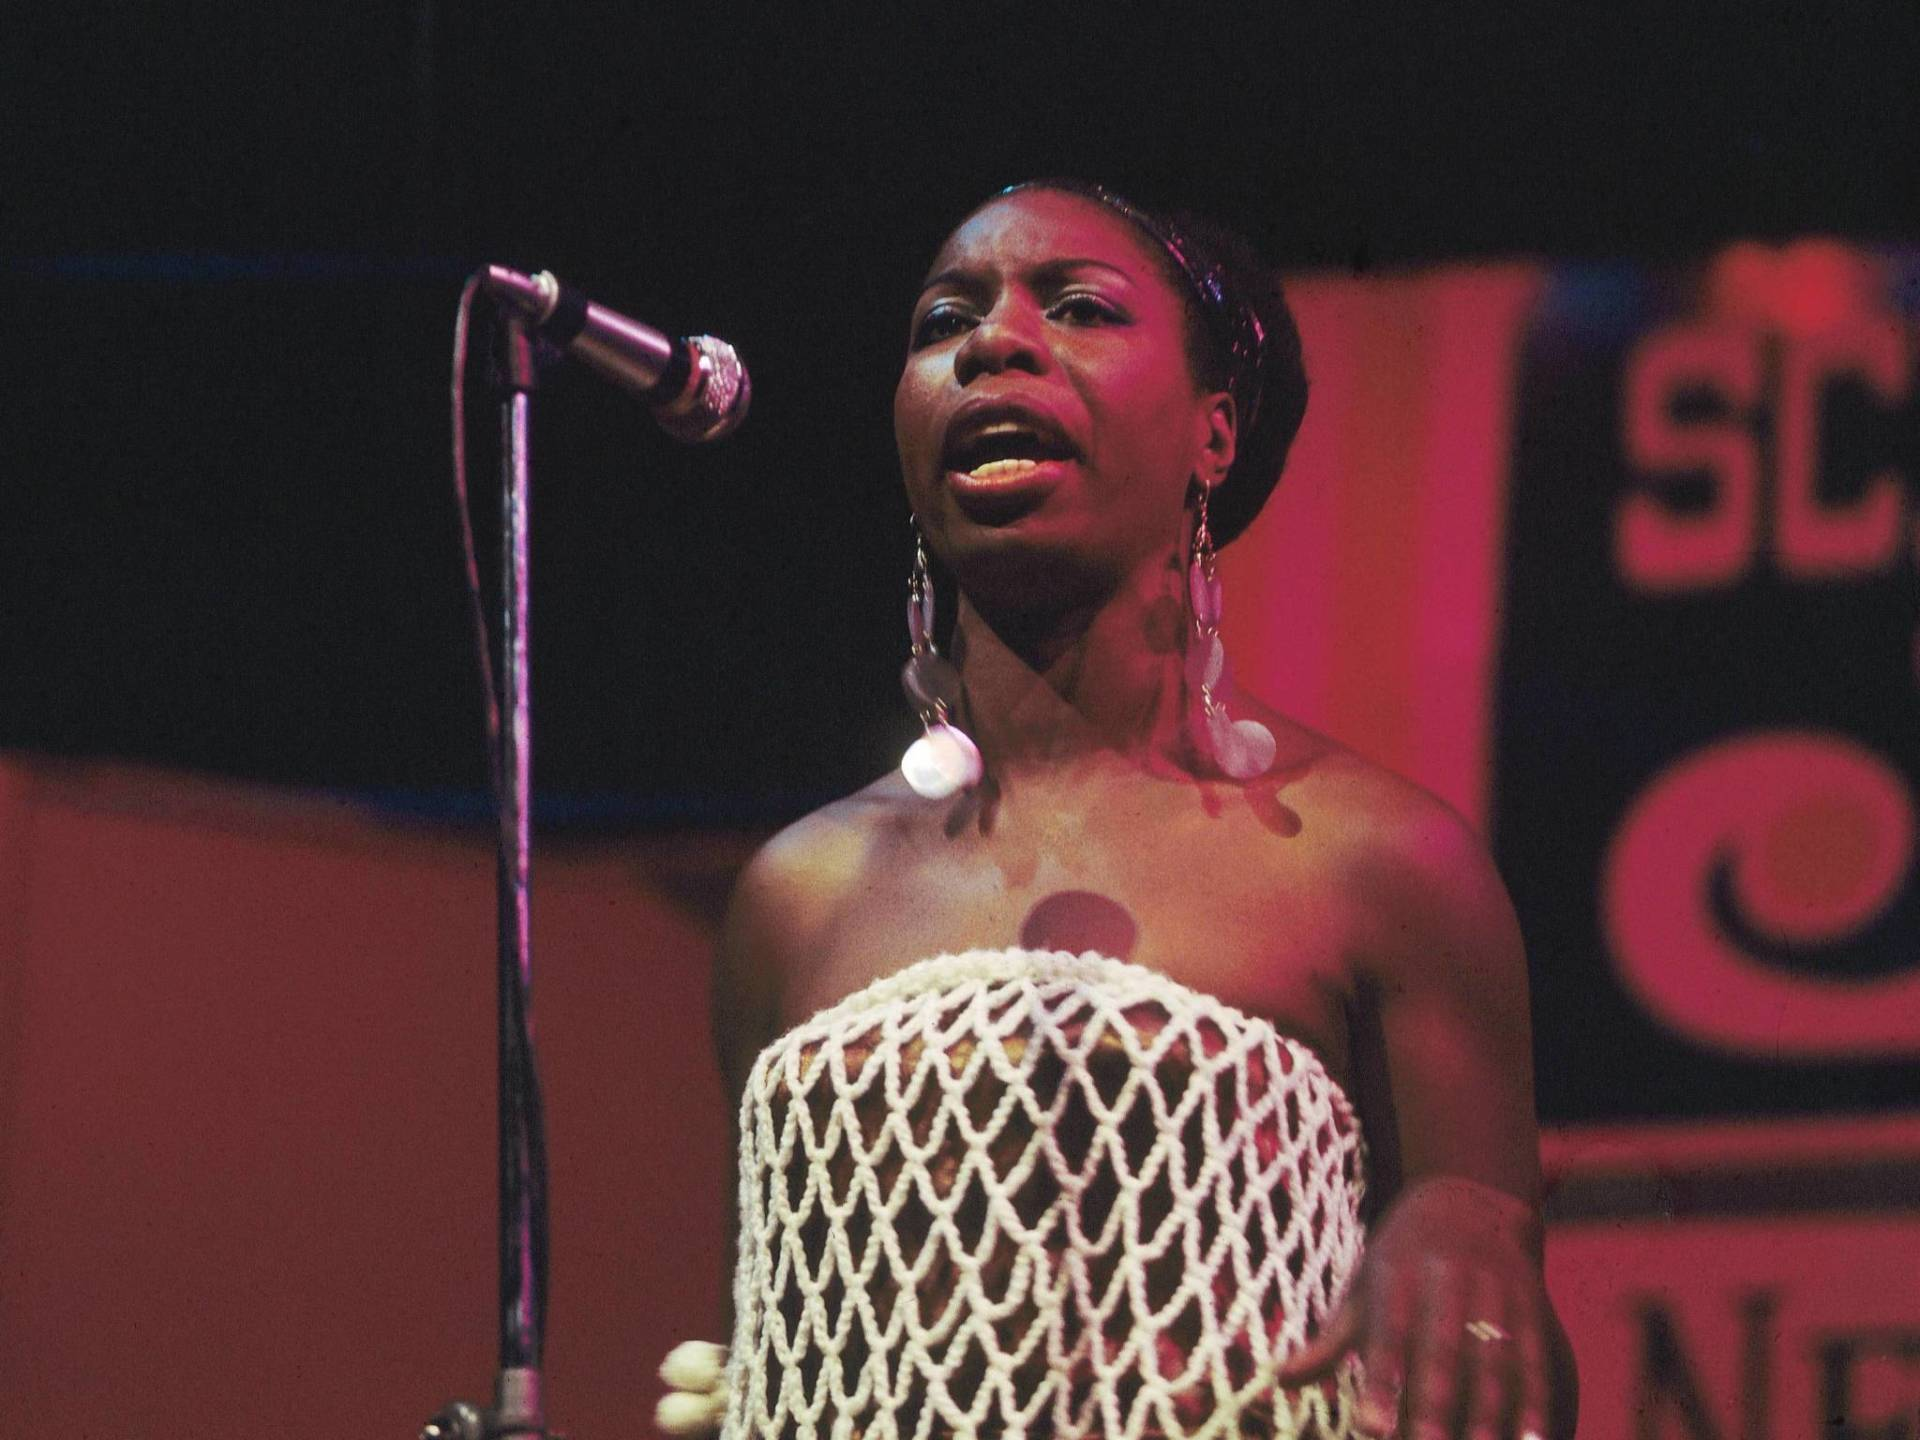 Nina Simone onstage at the Newport Jazz Festival in 1968. David Redfern/Redferns/Getty Images